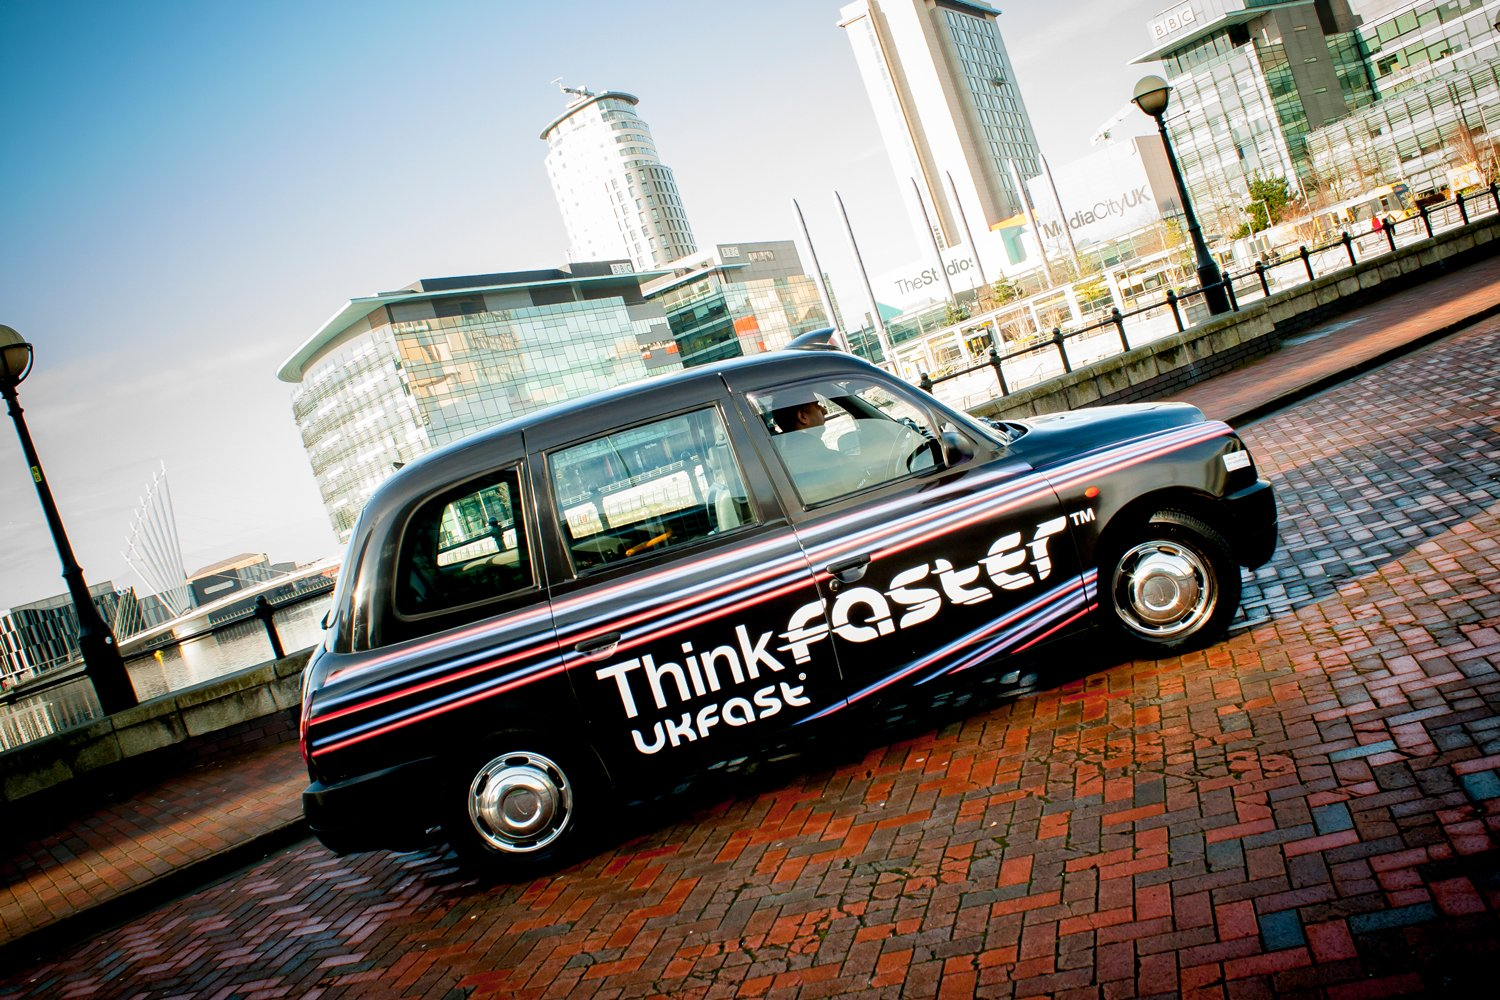 Uk Fast Taxi advertising campaign in manchester